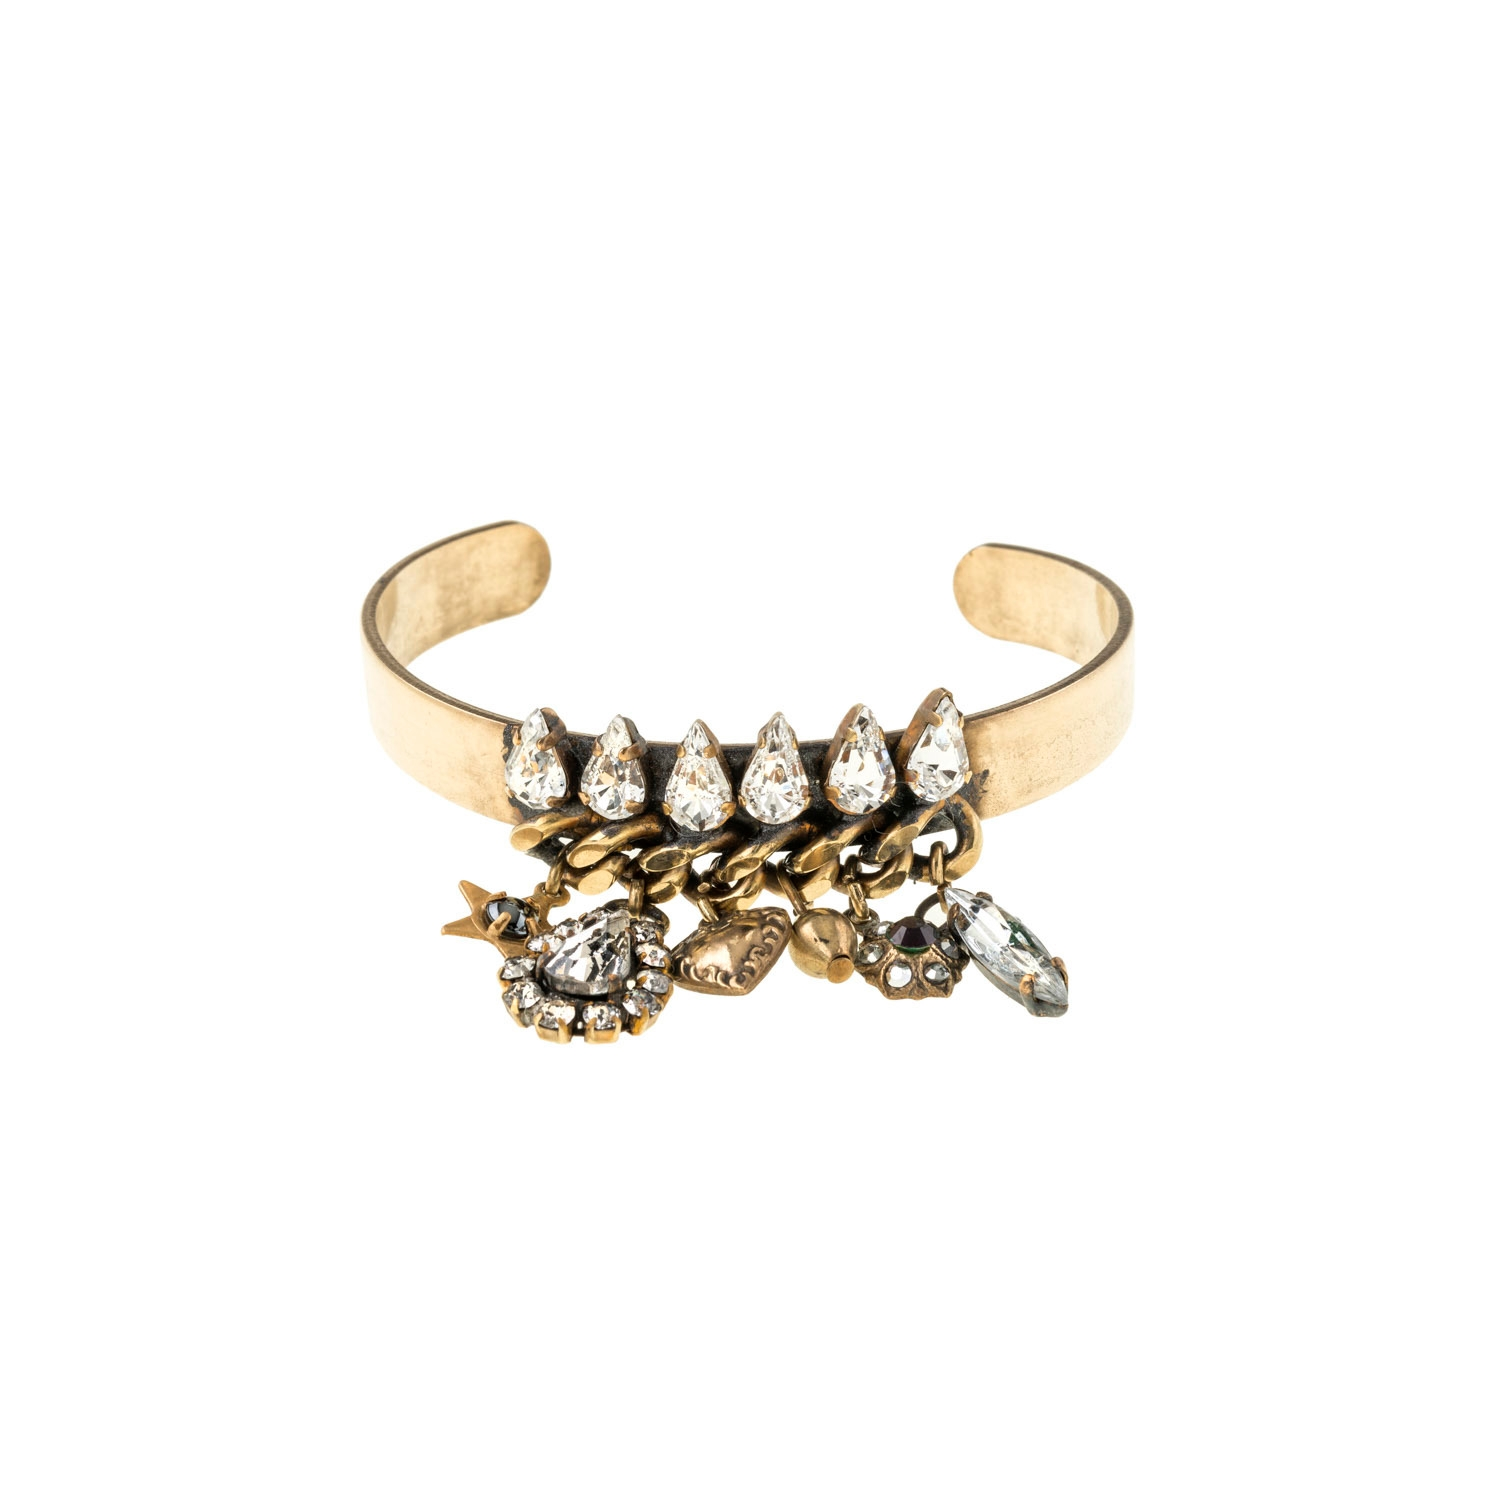 HALO & CO SPIKE CRYSTAL CUFF WITH VINTAGE CHARMS